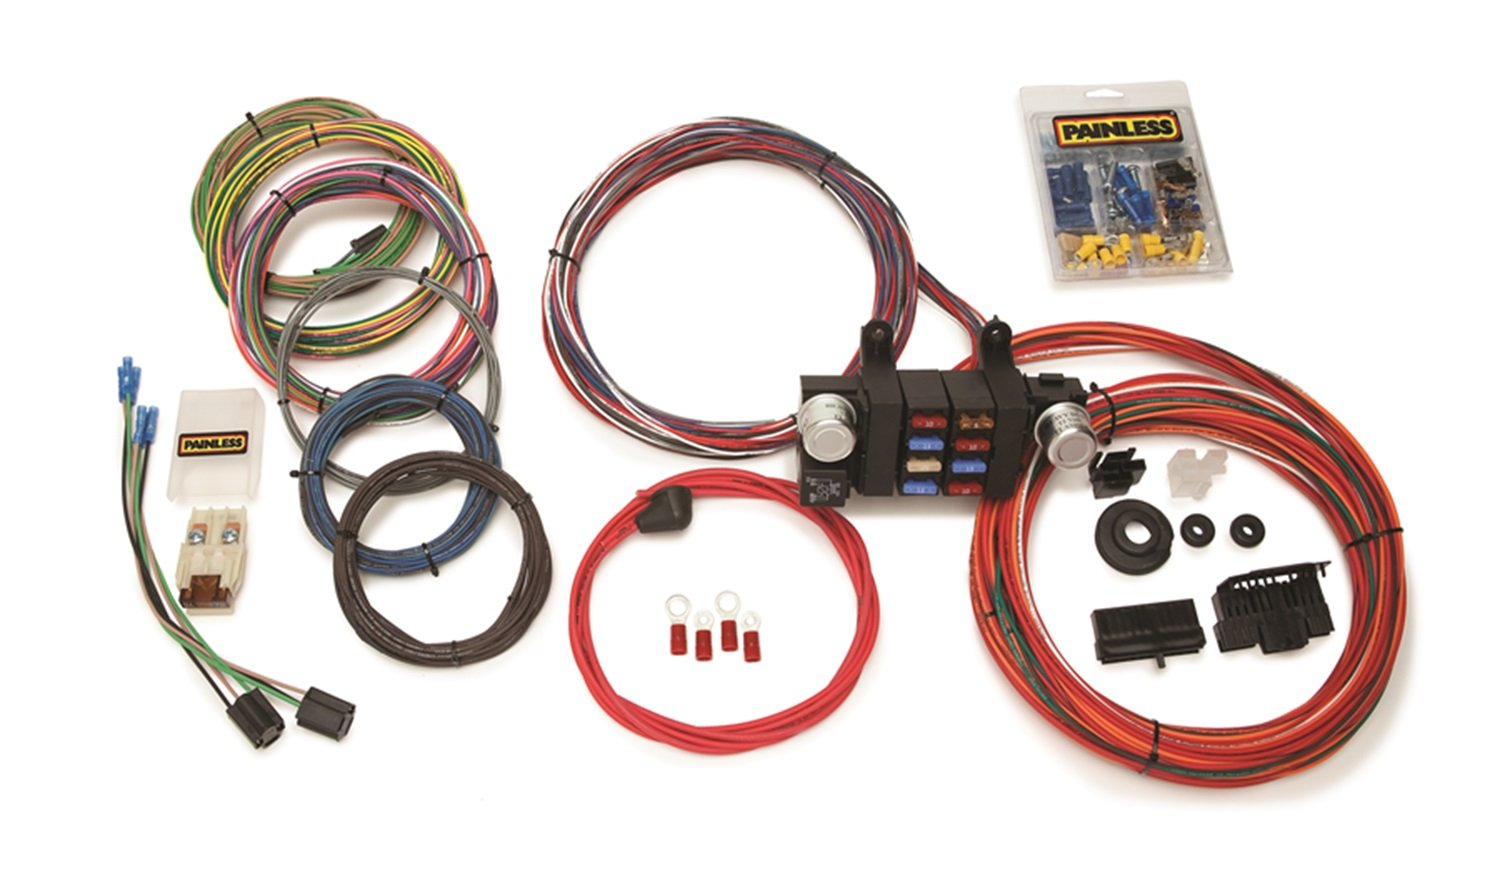 714FypRjpJL._SL1500_ amazon com painless wiring 10308 8 circuit mod t bucket h automotive wiring harness at panicattacktreatment.co